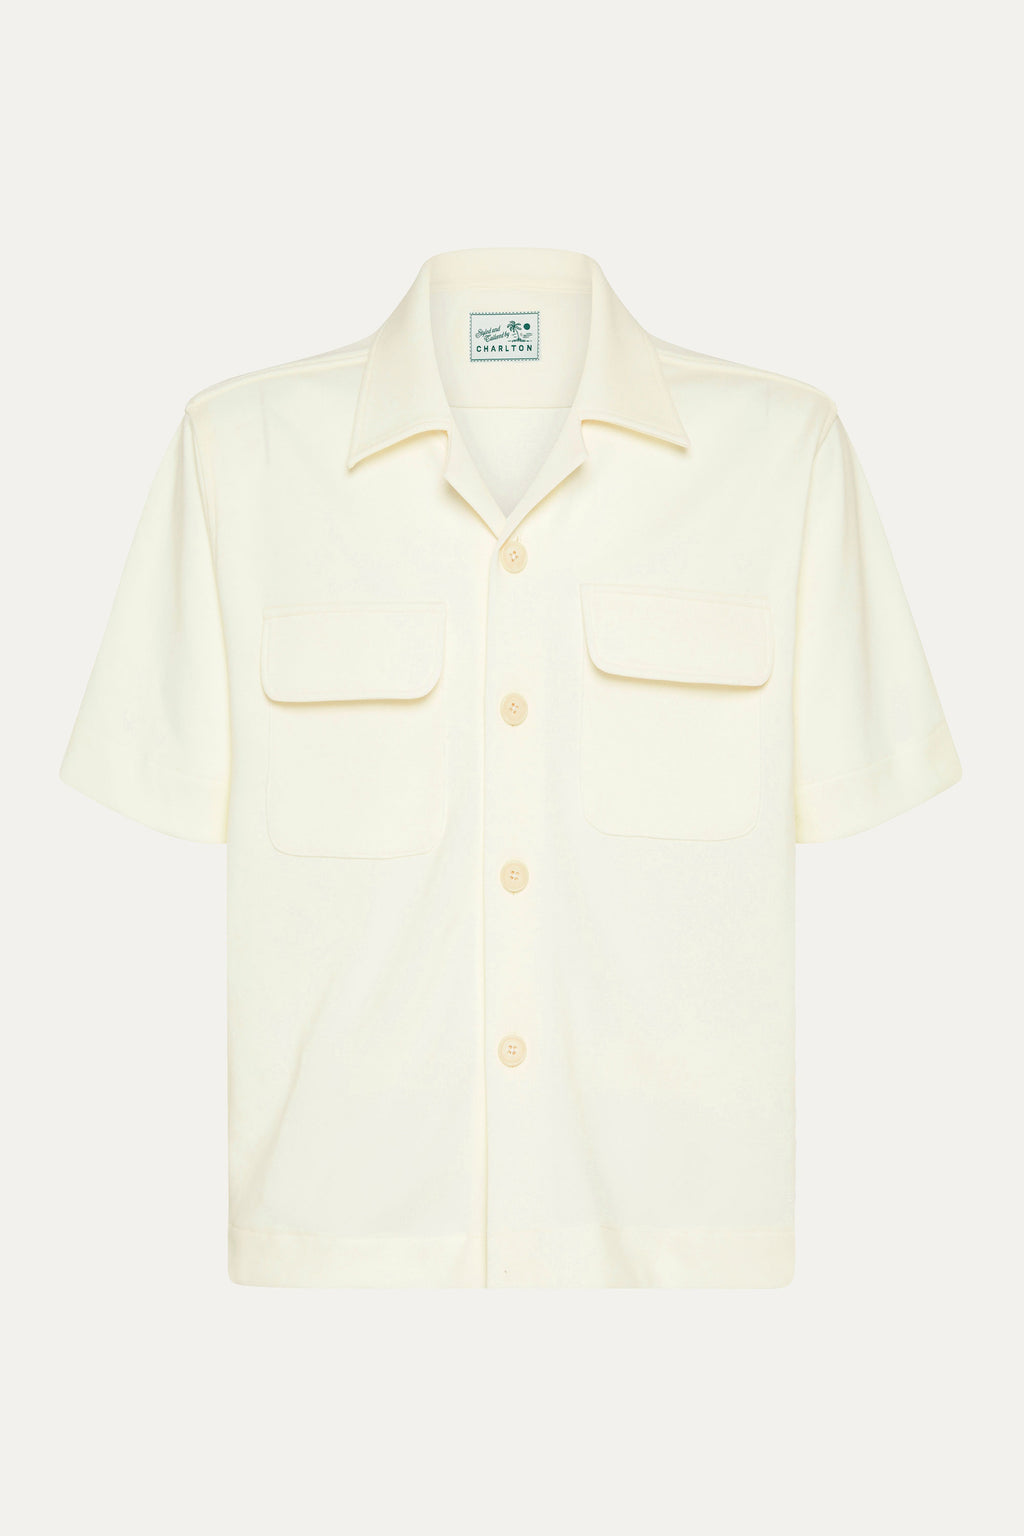 Double Pocket Japanese Utility Shirt